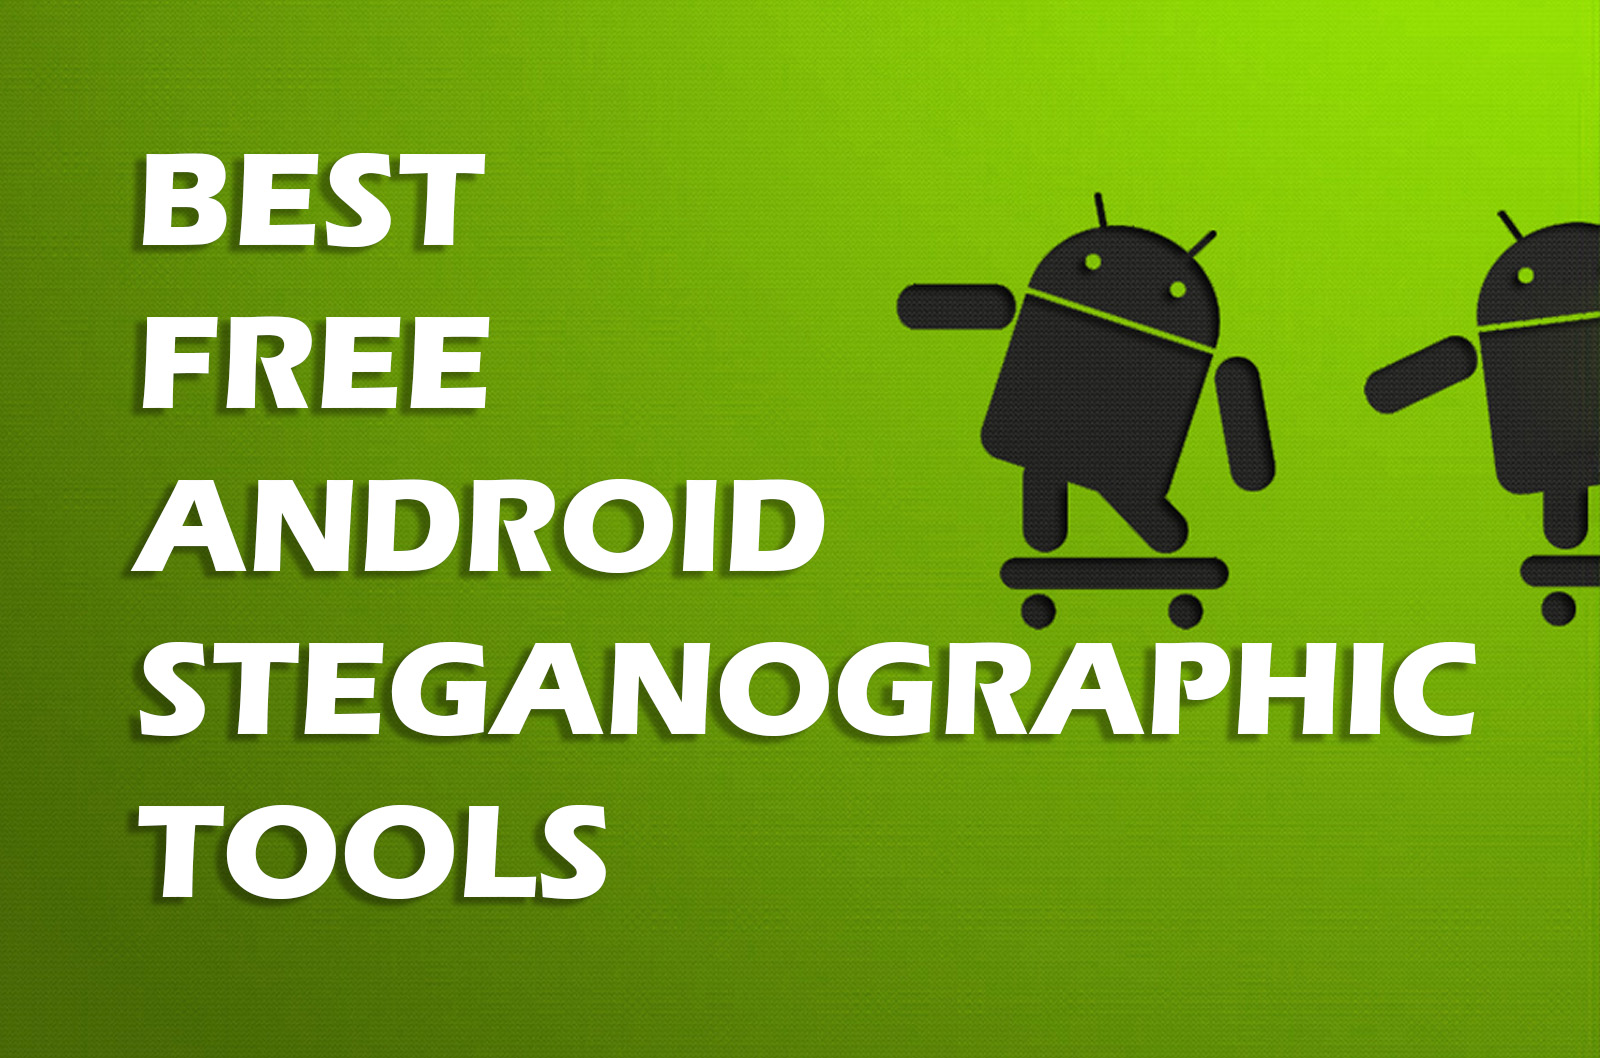 Best Free Steganographic Tools For Android